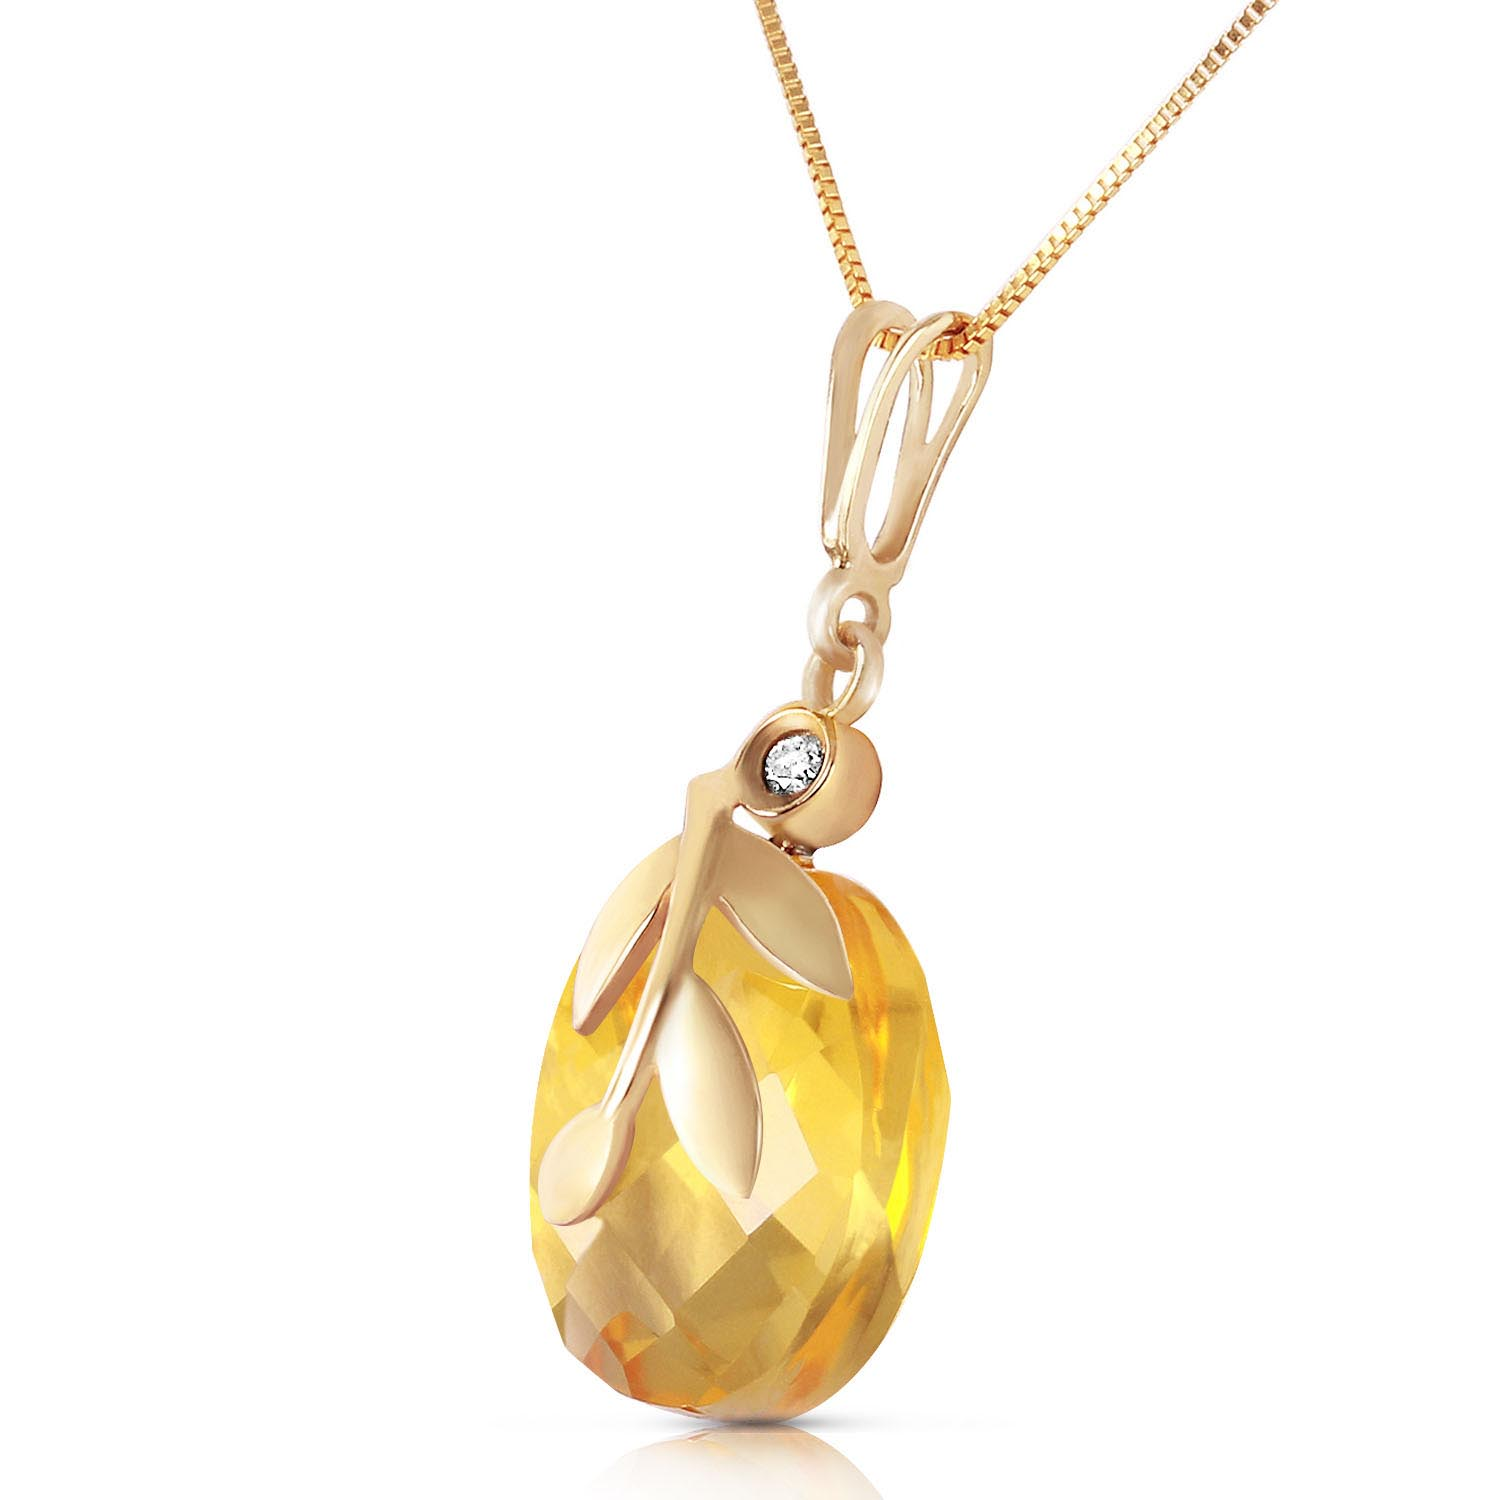 Citrine and Diamond Olive Leaf Chequer Pendant Necklace 5.3ct in 14K Gold